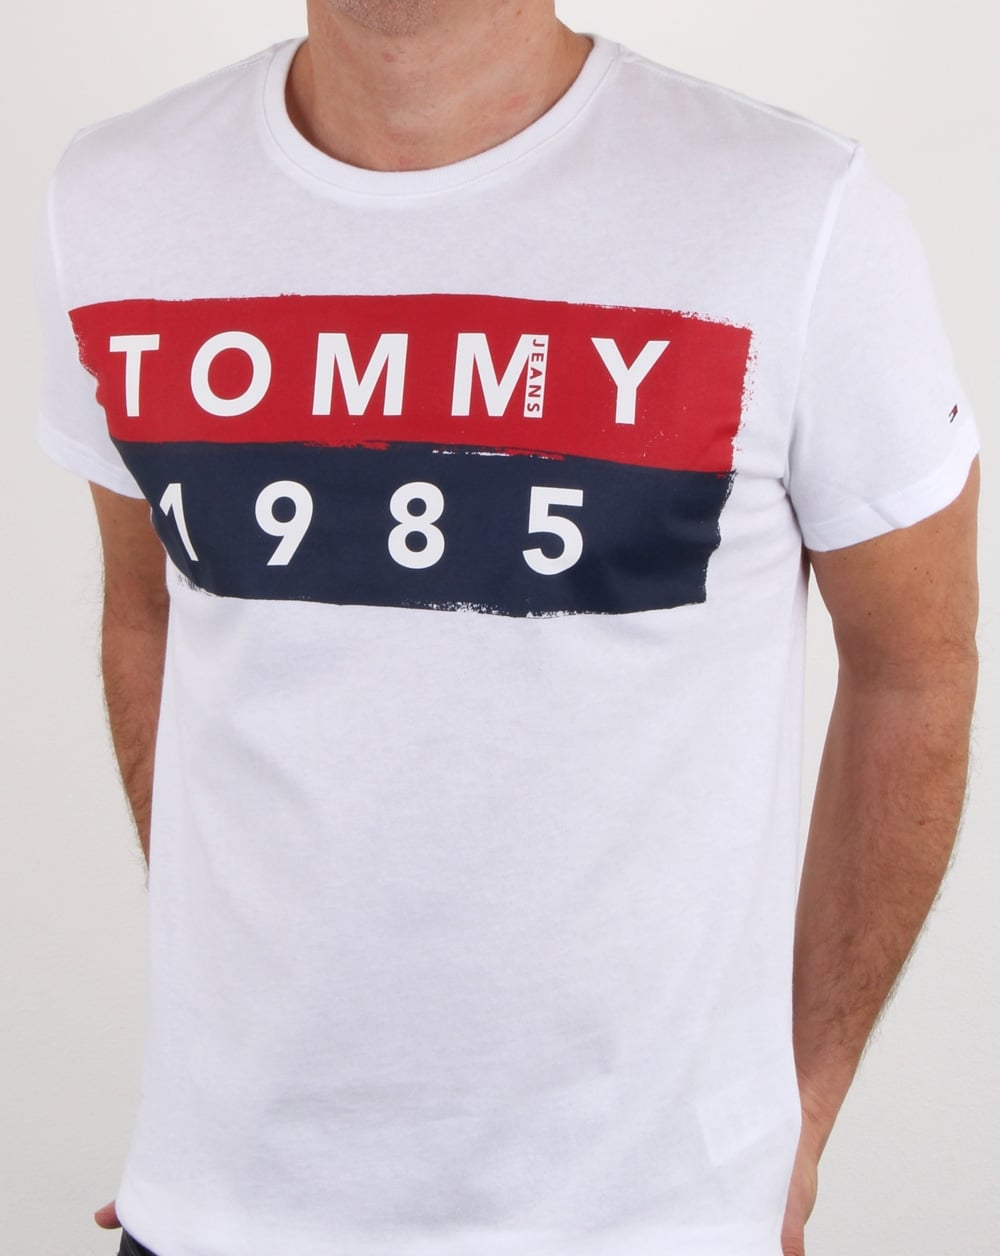 tommy hilfiger 1985 logo t shirt white tee cotton crew. Black Bedroom Furniture Sets. Home Design Ideas